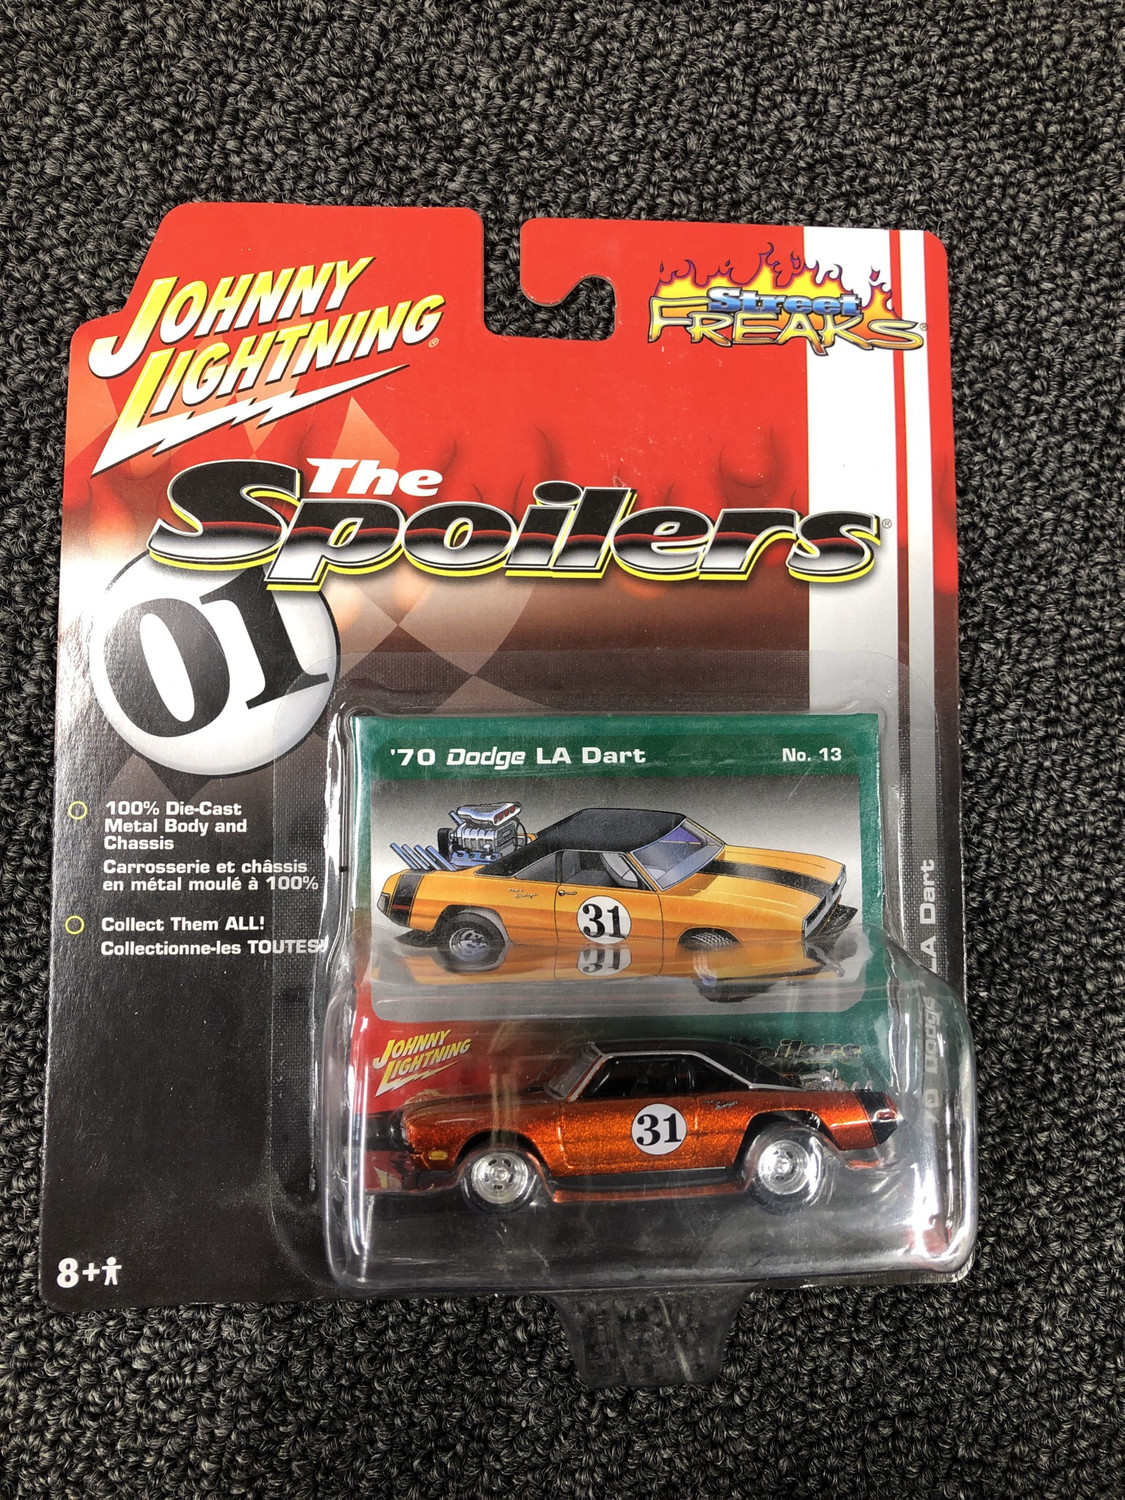 Johnny lightning-The Spoilers 1970 Dodge LA Dart